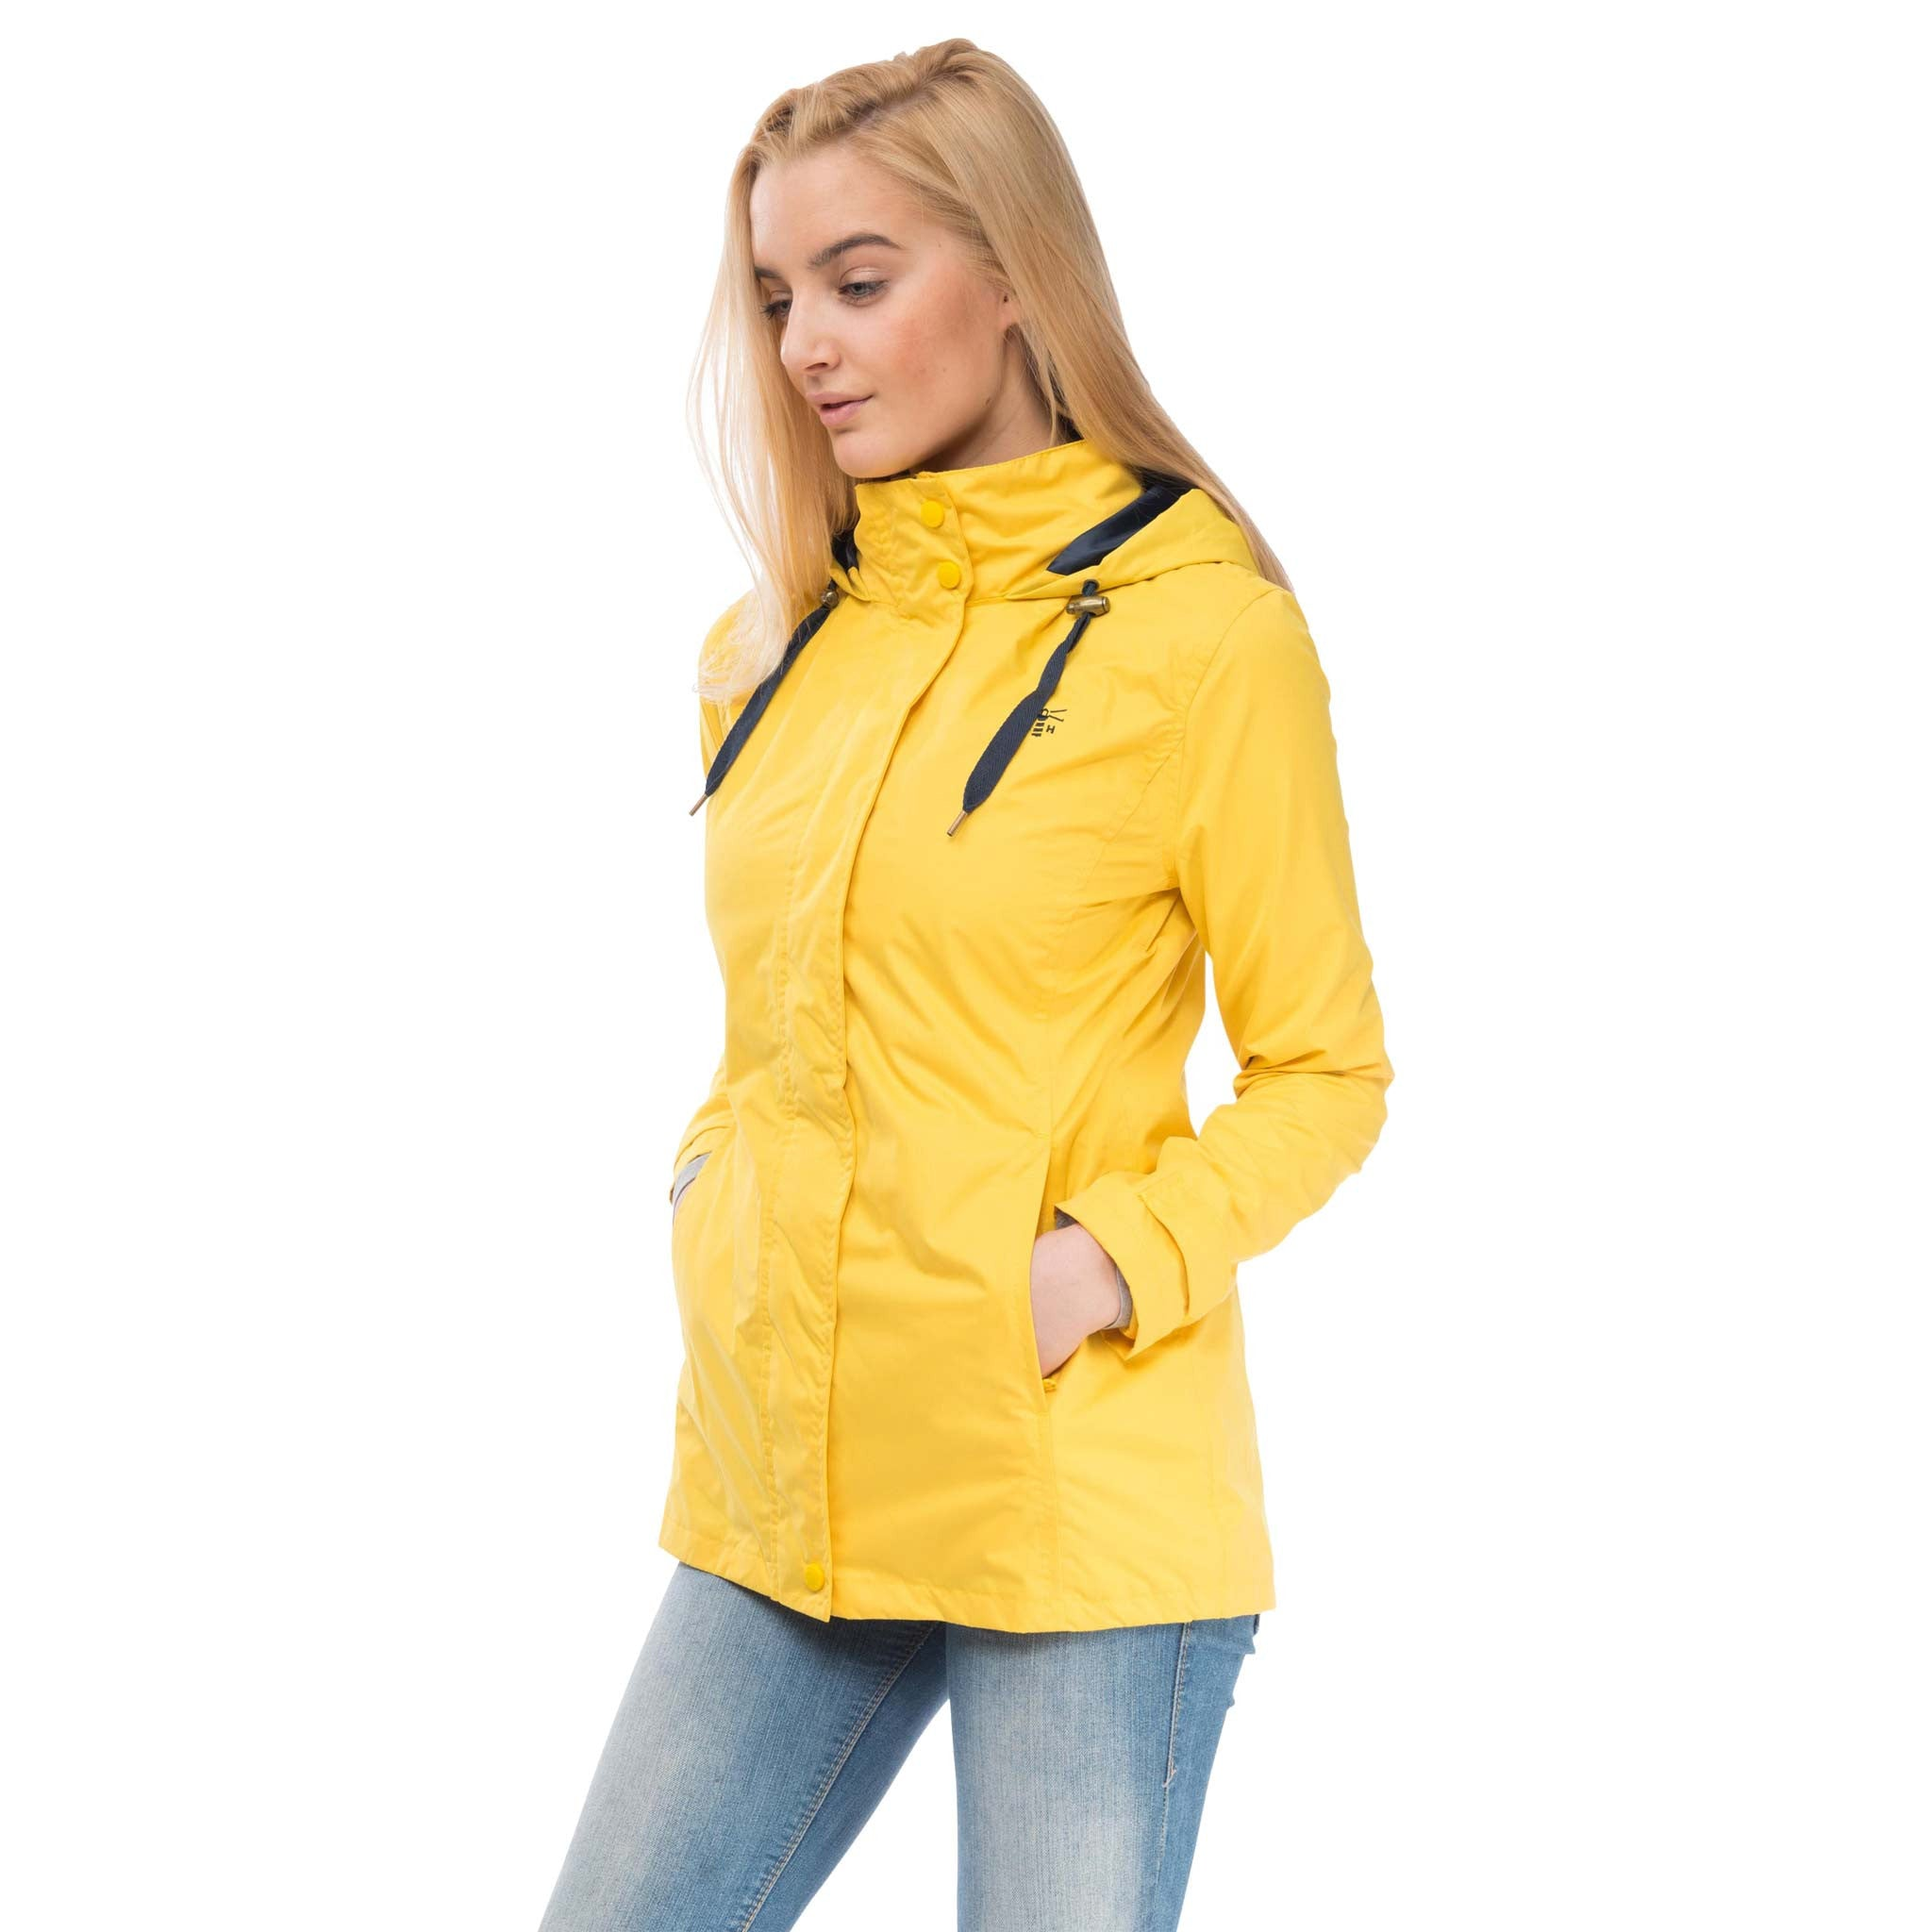 Beachcomber Waterproof Hooded Jacket in Sunbeam Yellow, Modelled Side View | Lighthouse